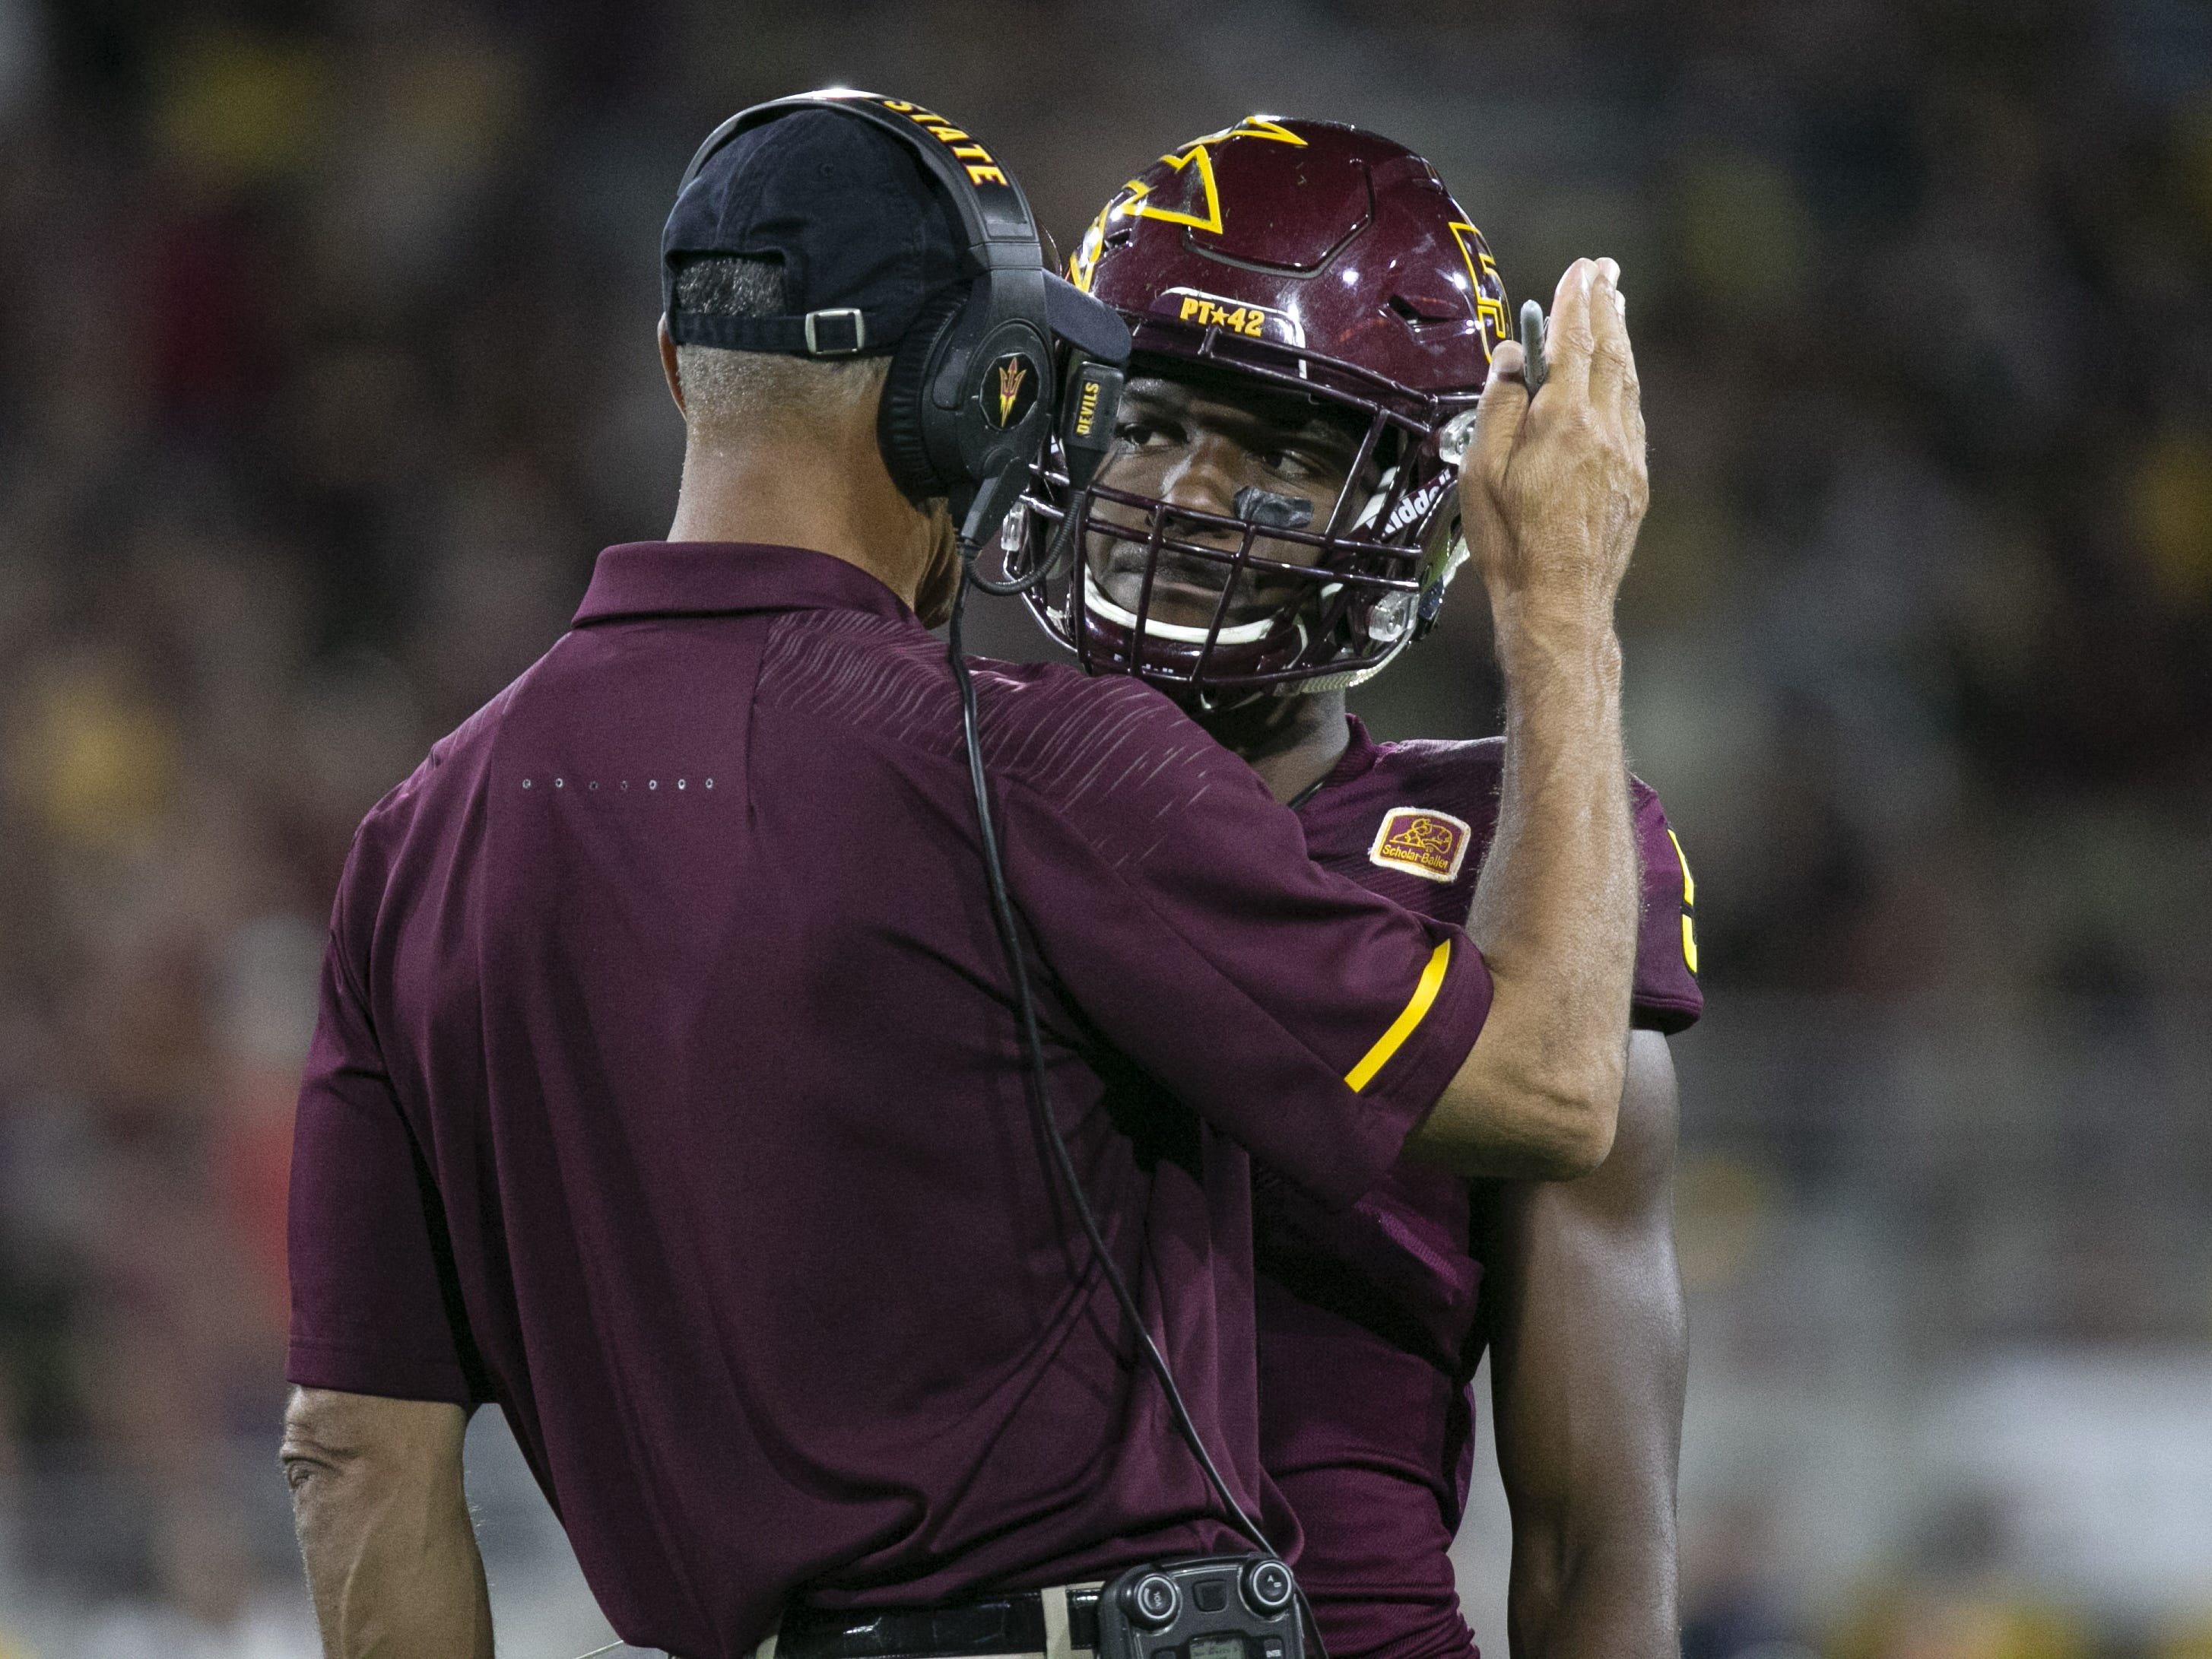 ASU head coach Herm Edwards talks to ASU defensive back Kobe Williams during the first half of the Pac-12 college football game against Stanford at Sun Devil Stadium in Tempe on October 18, 2018.